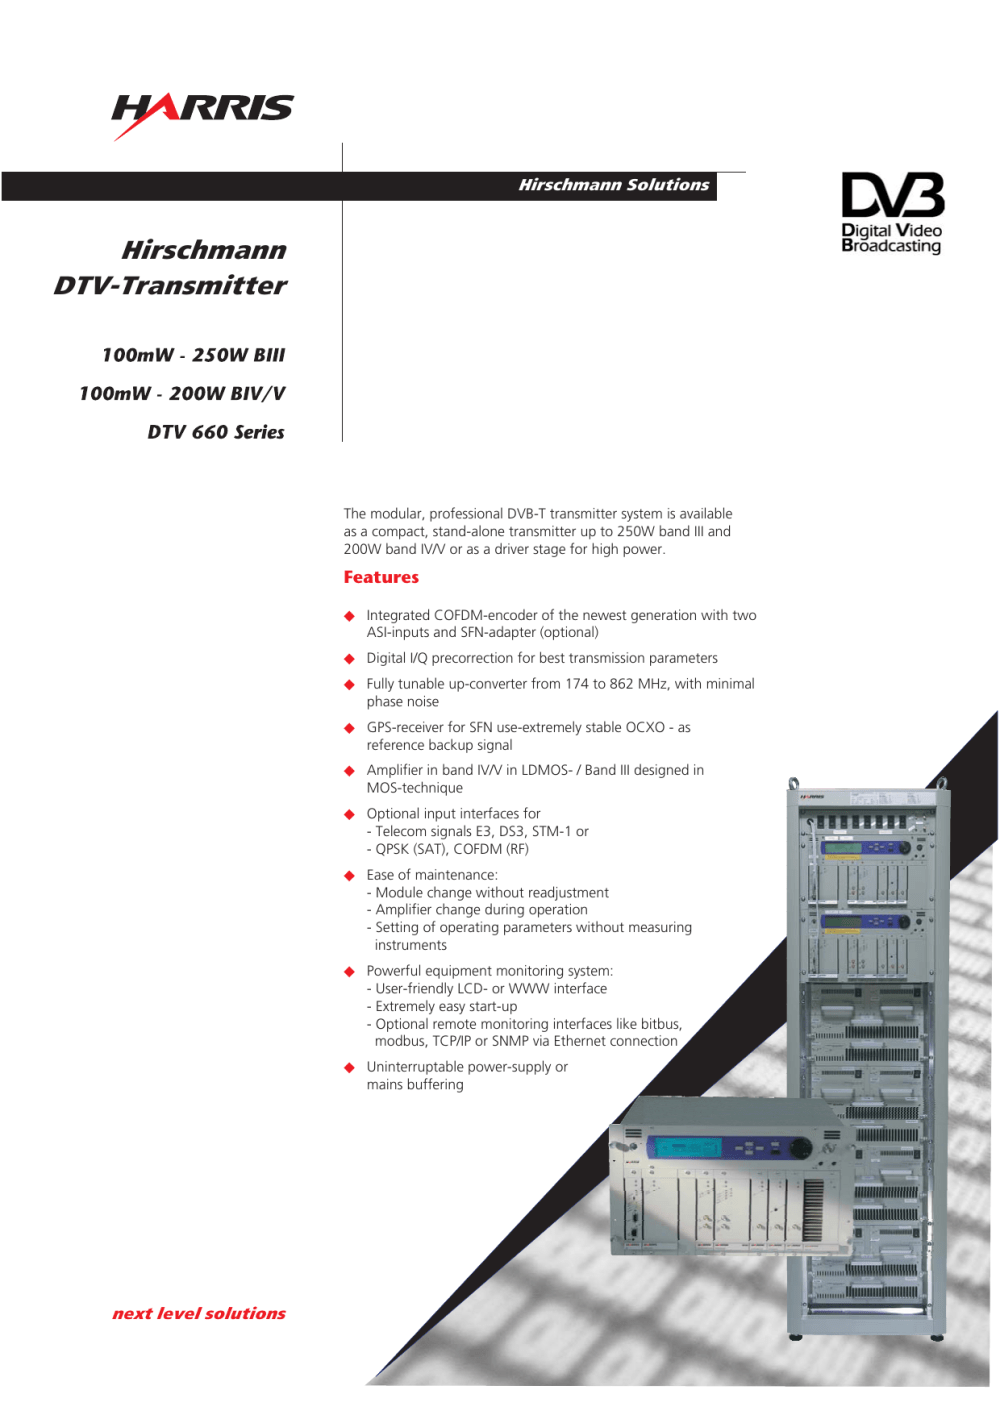 medium resolution of hirschmann solutions hirschmann dtv transmitter the modular professional dvb t transmitter system is available as a compact stand alone transmitter up to